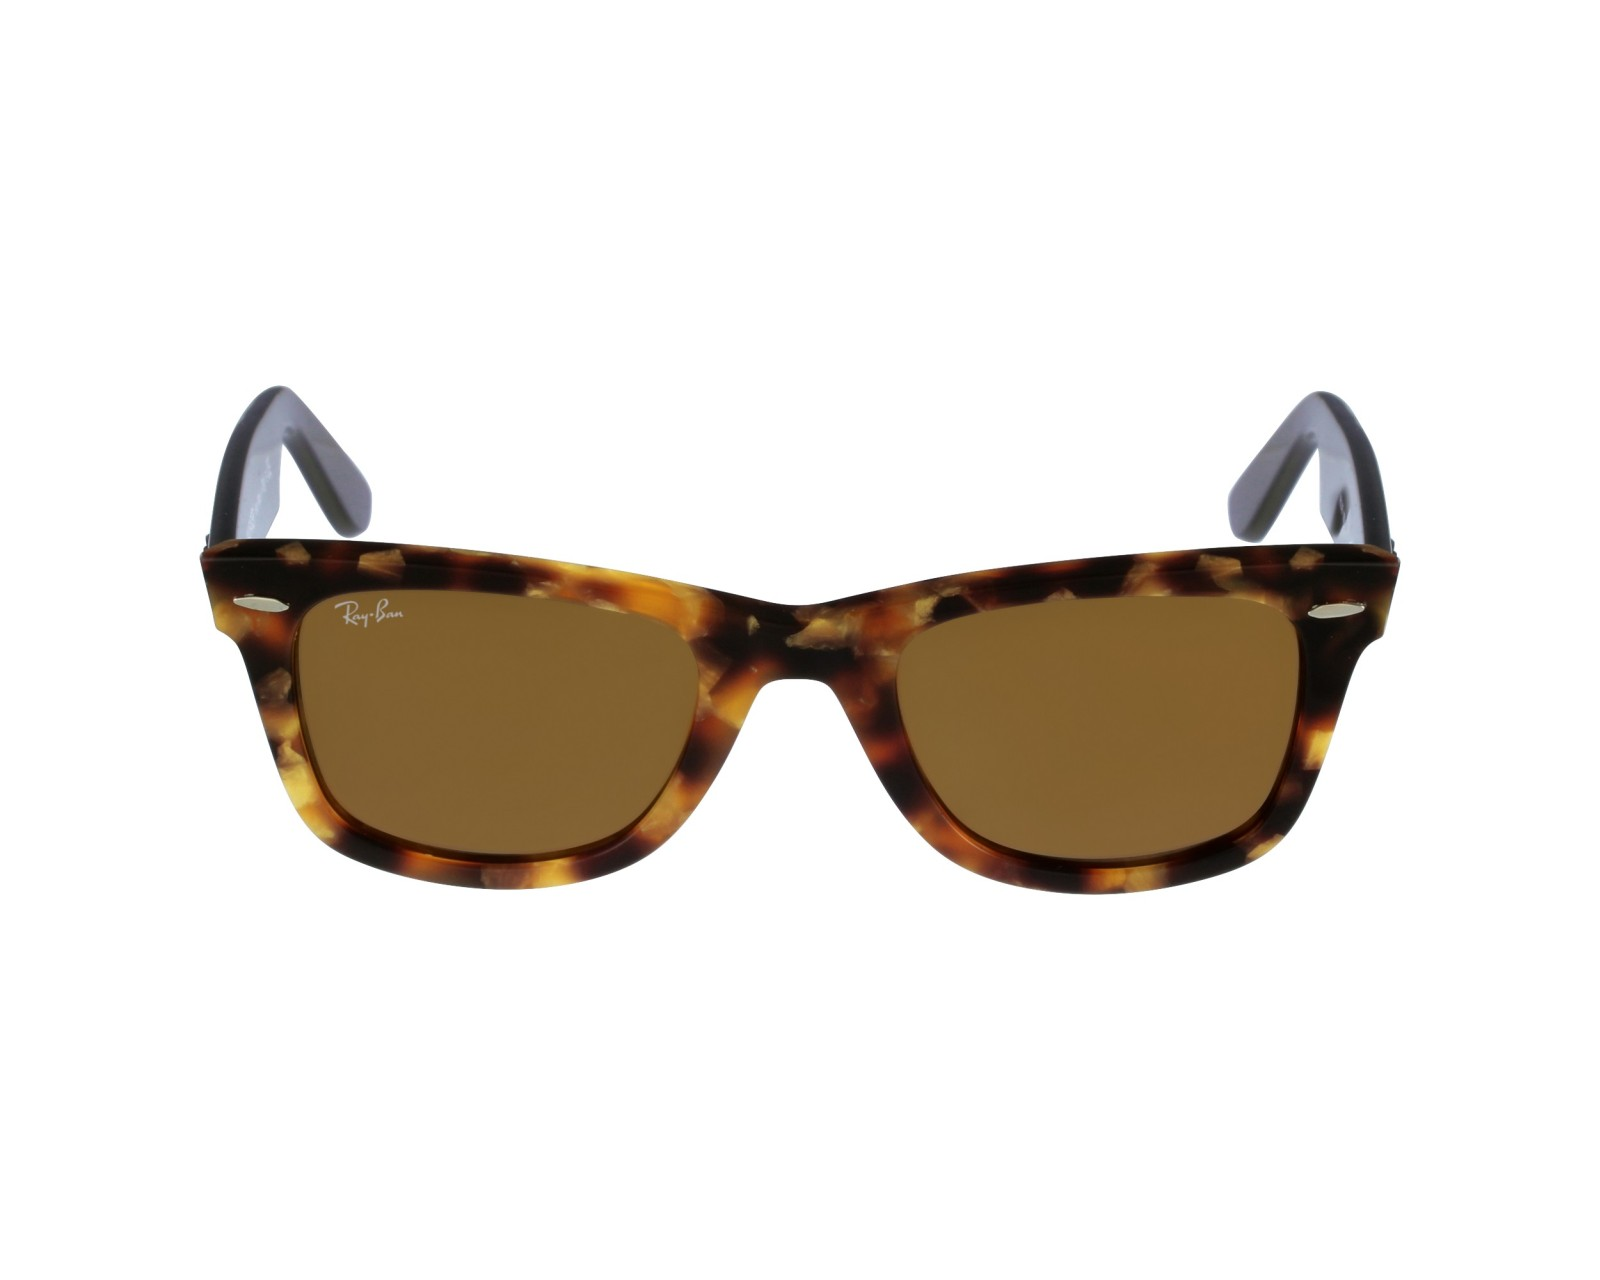 d0c444673e Ray Ban 2027 W1847 3nder Images « Heritage Malta